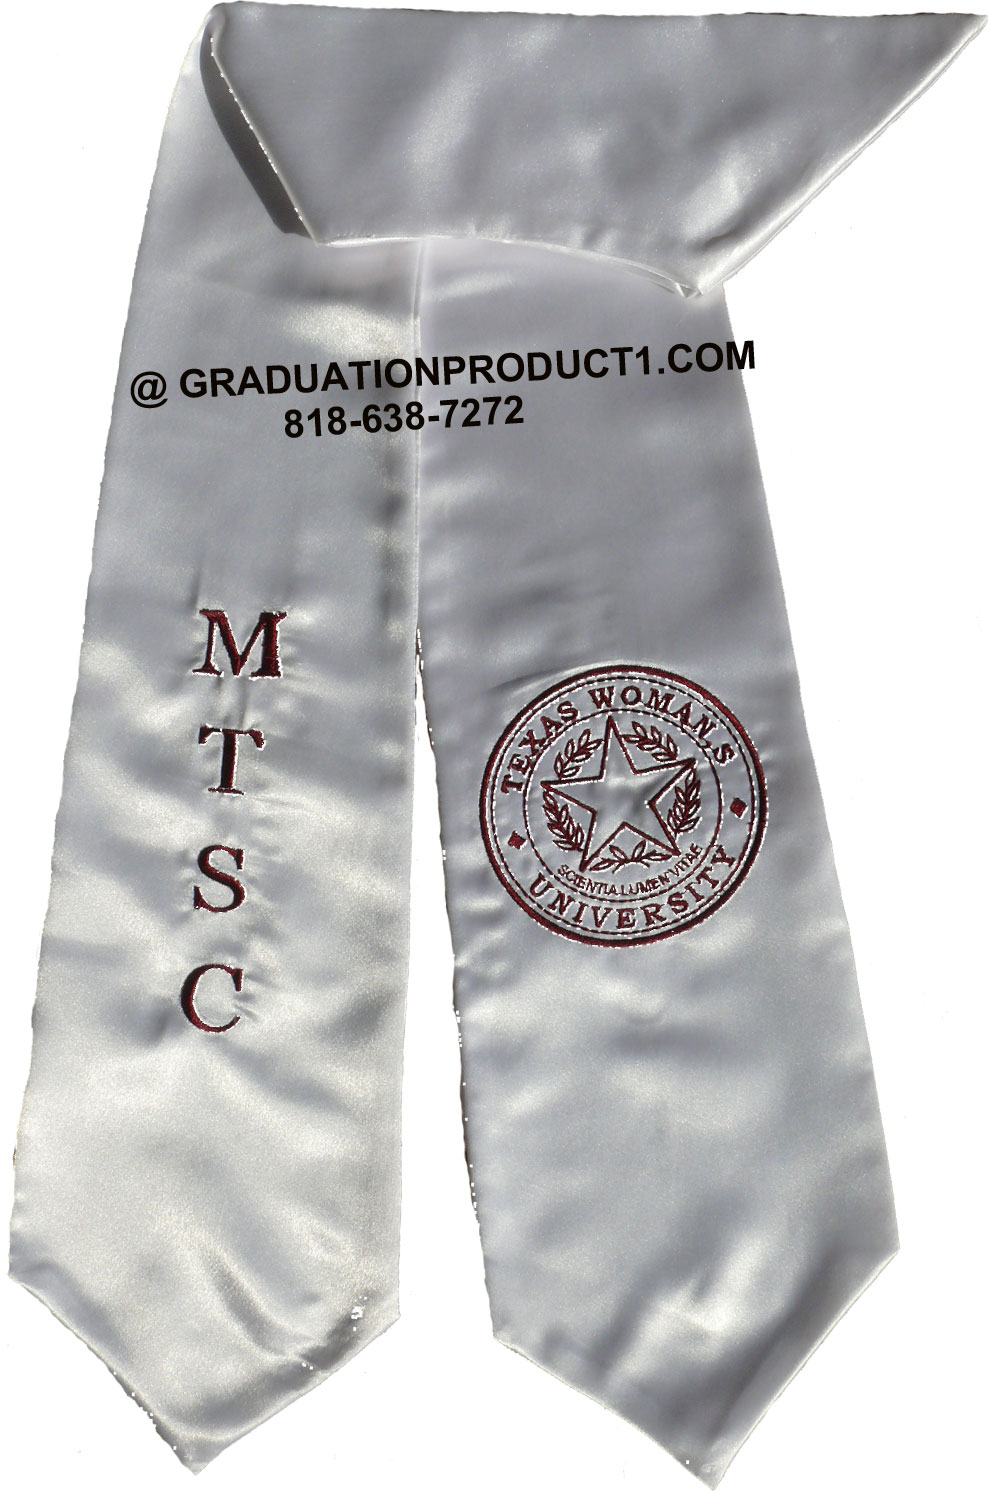 Texas Womans University Mtsc Graduation Stole